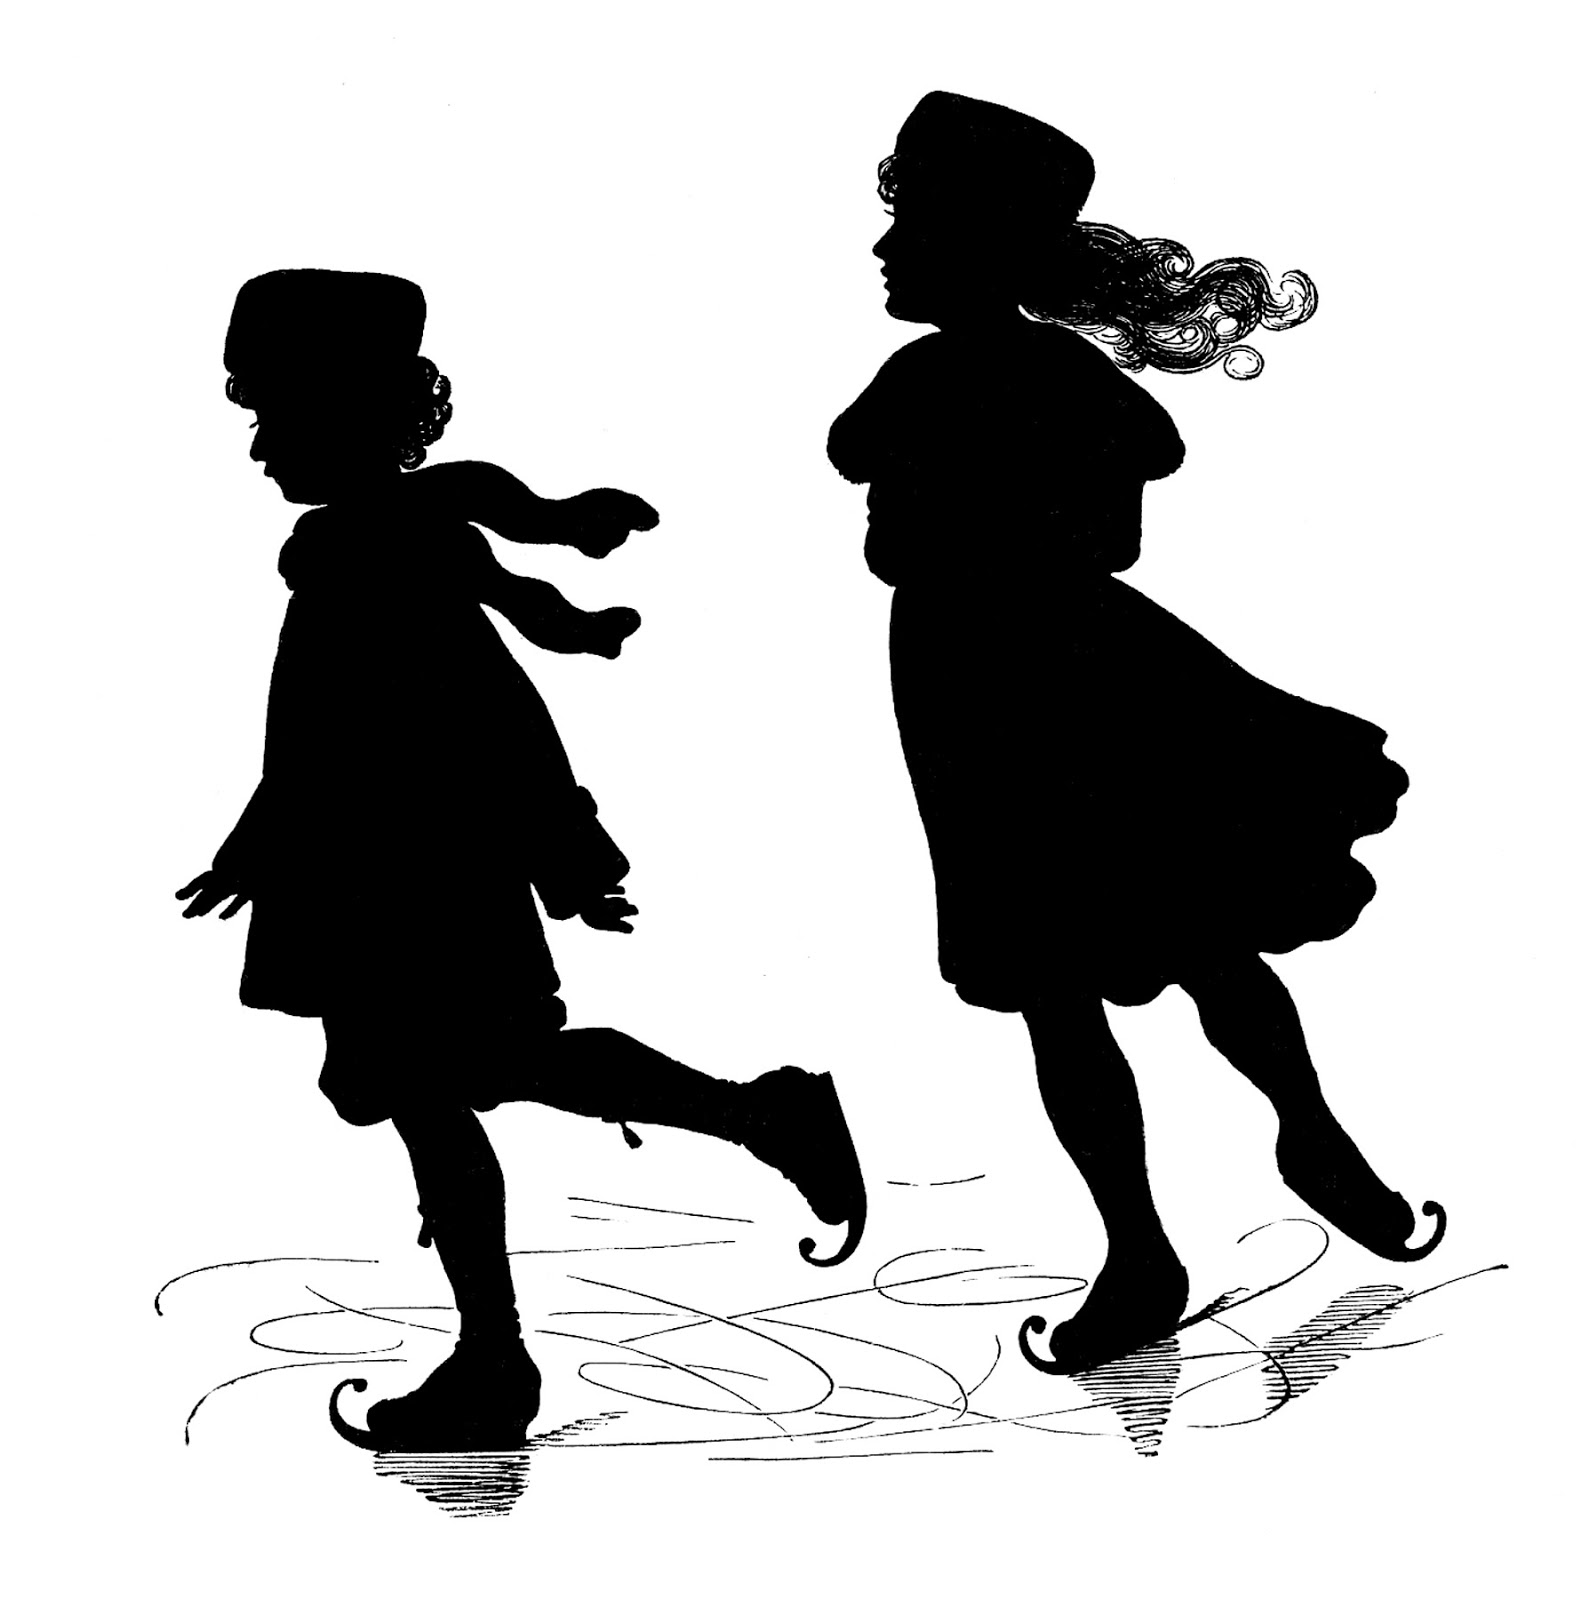 figure skater silhouette silhouette images skating graphicsfairy1 the graphics fairy silhouette figure skater